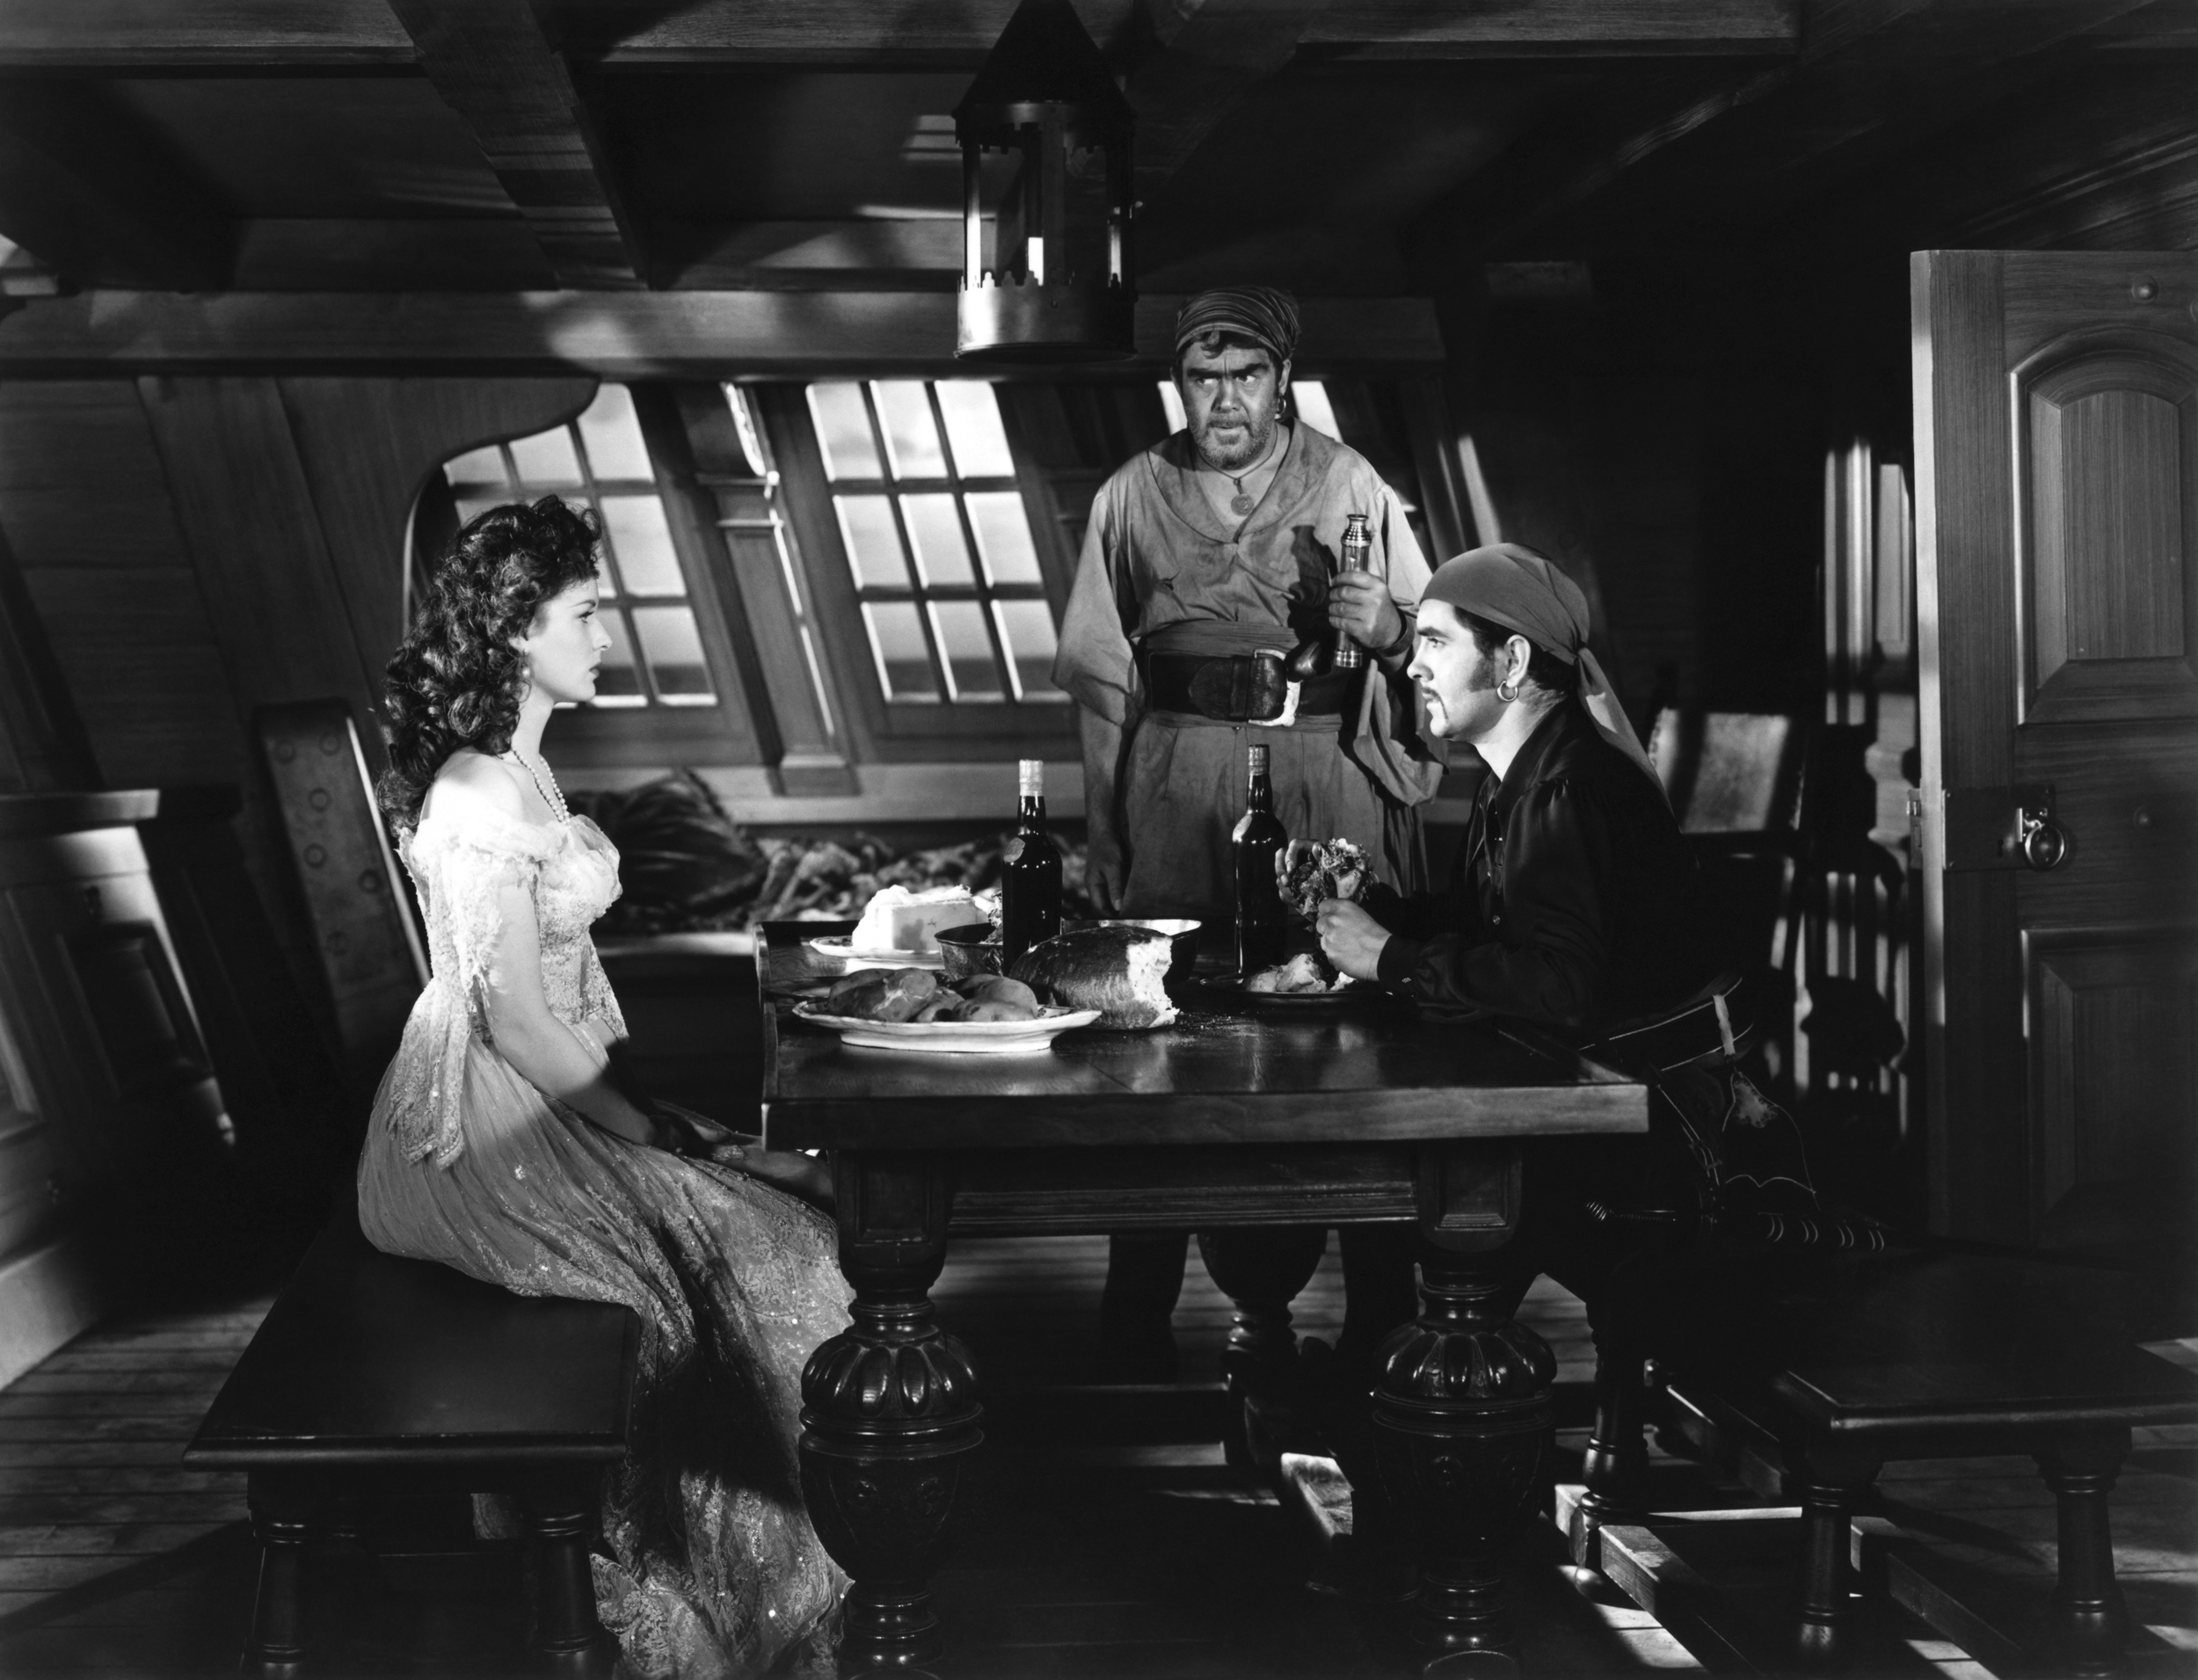 Tyrone Power, Jr. in The Black Swan with (L to R) Maureen O'Hara, Thomas Mitchell, Tyrone Power, Jr.